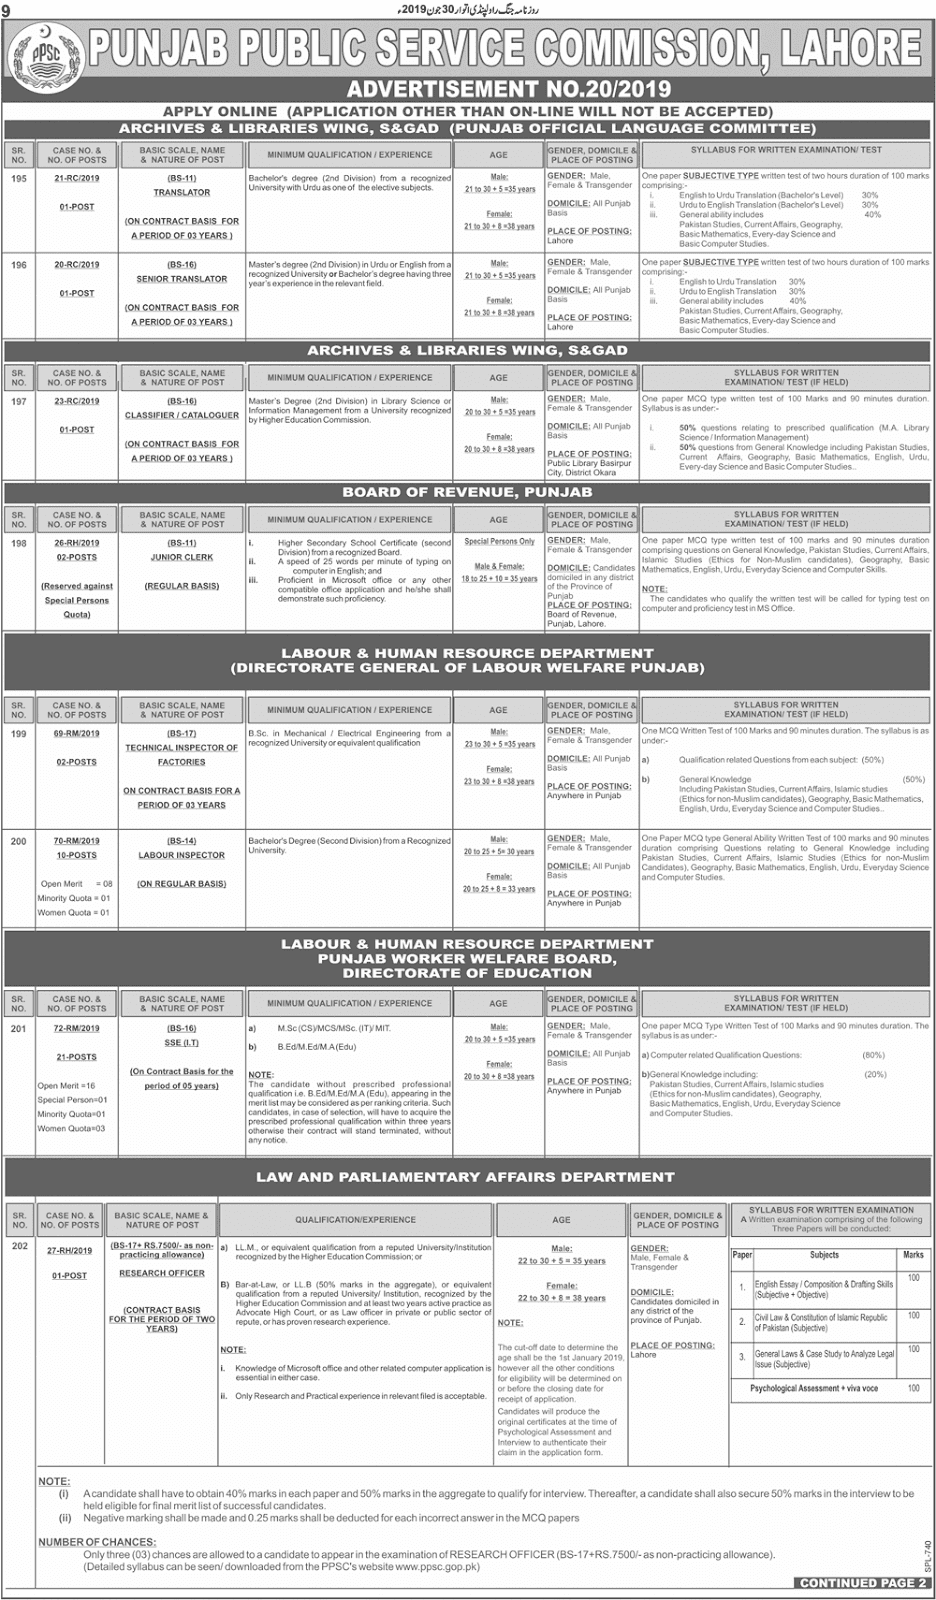 PPSC Advertisement 20/2019 Page No. 1/2